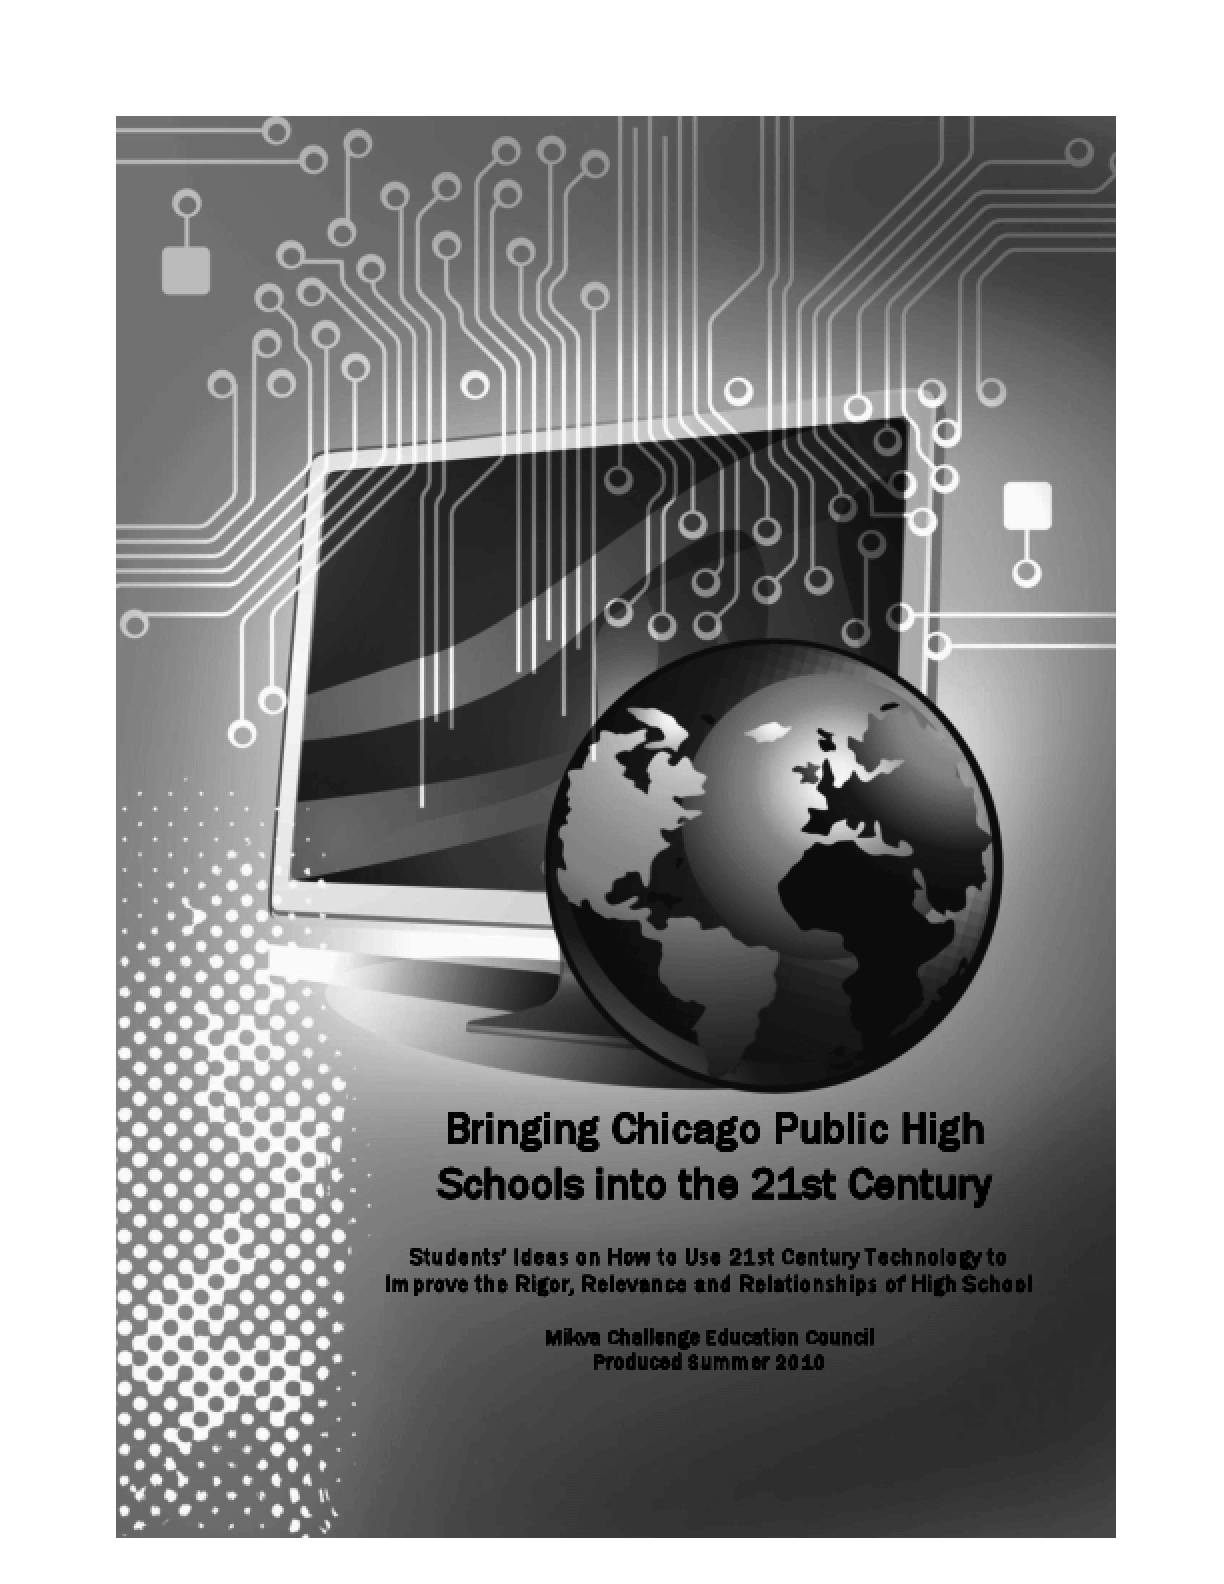 Bringing Chicago Public Schools into the 21st Century